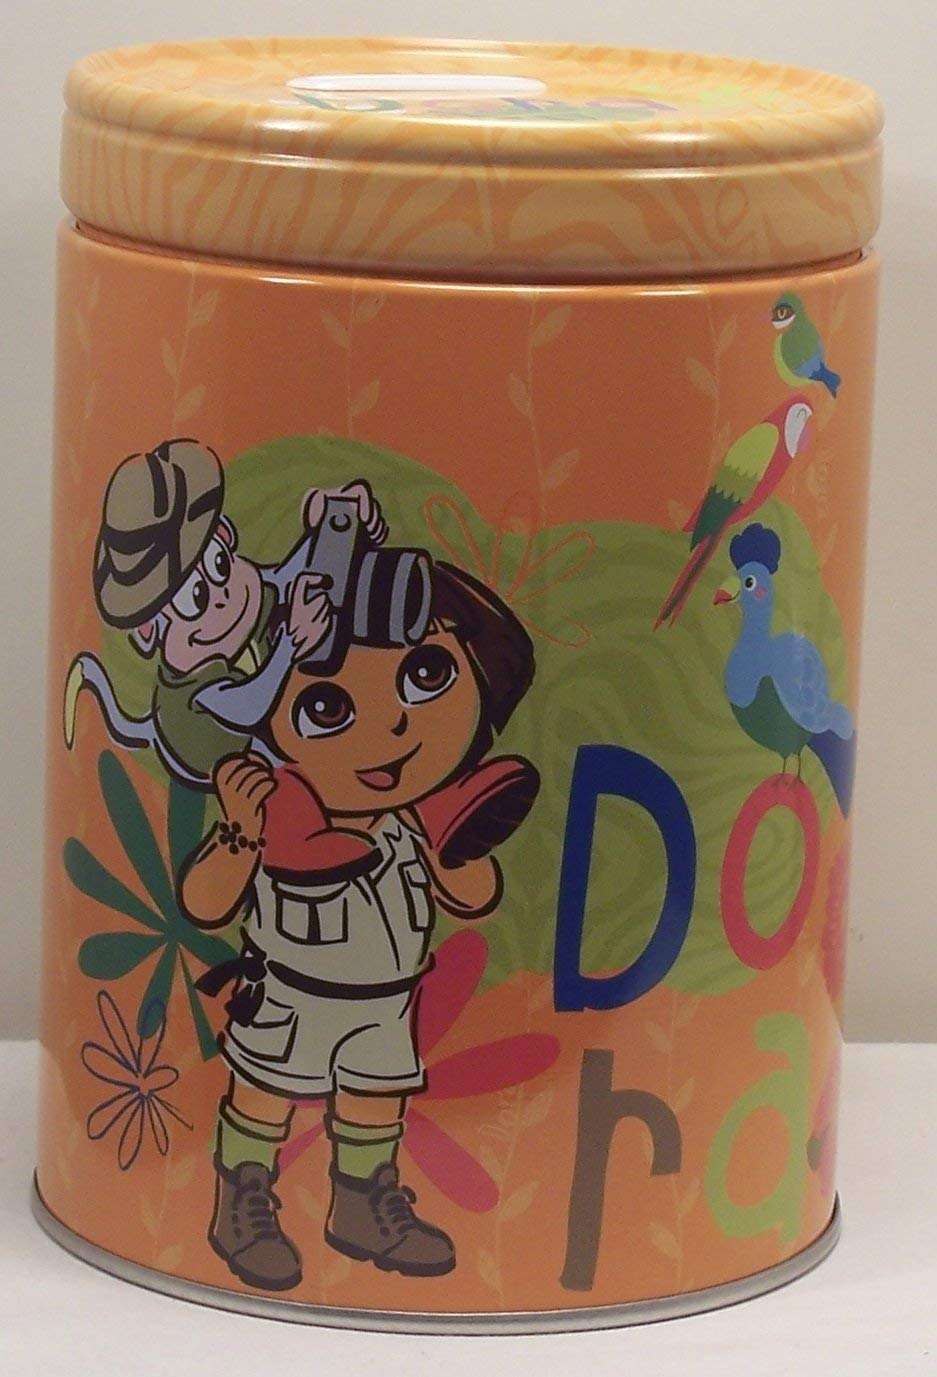 Dora the Explorer Round Tin Coin Bank Lets Explorer Theジャングル   B00S6ZQWZS